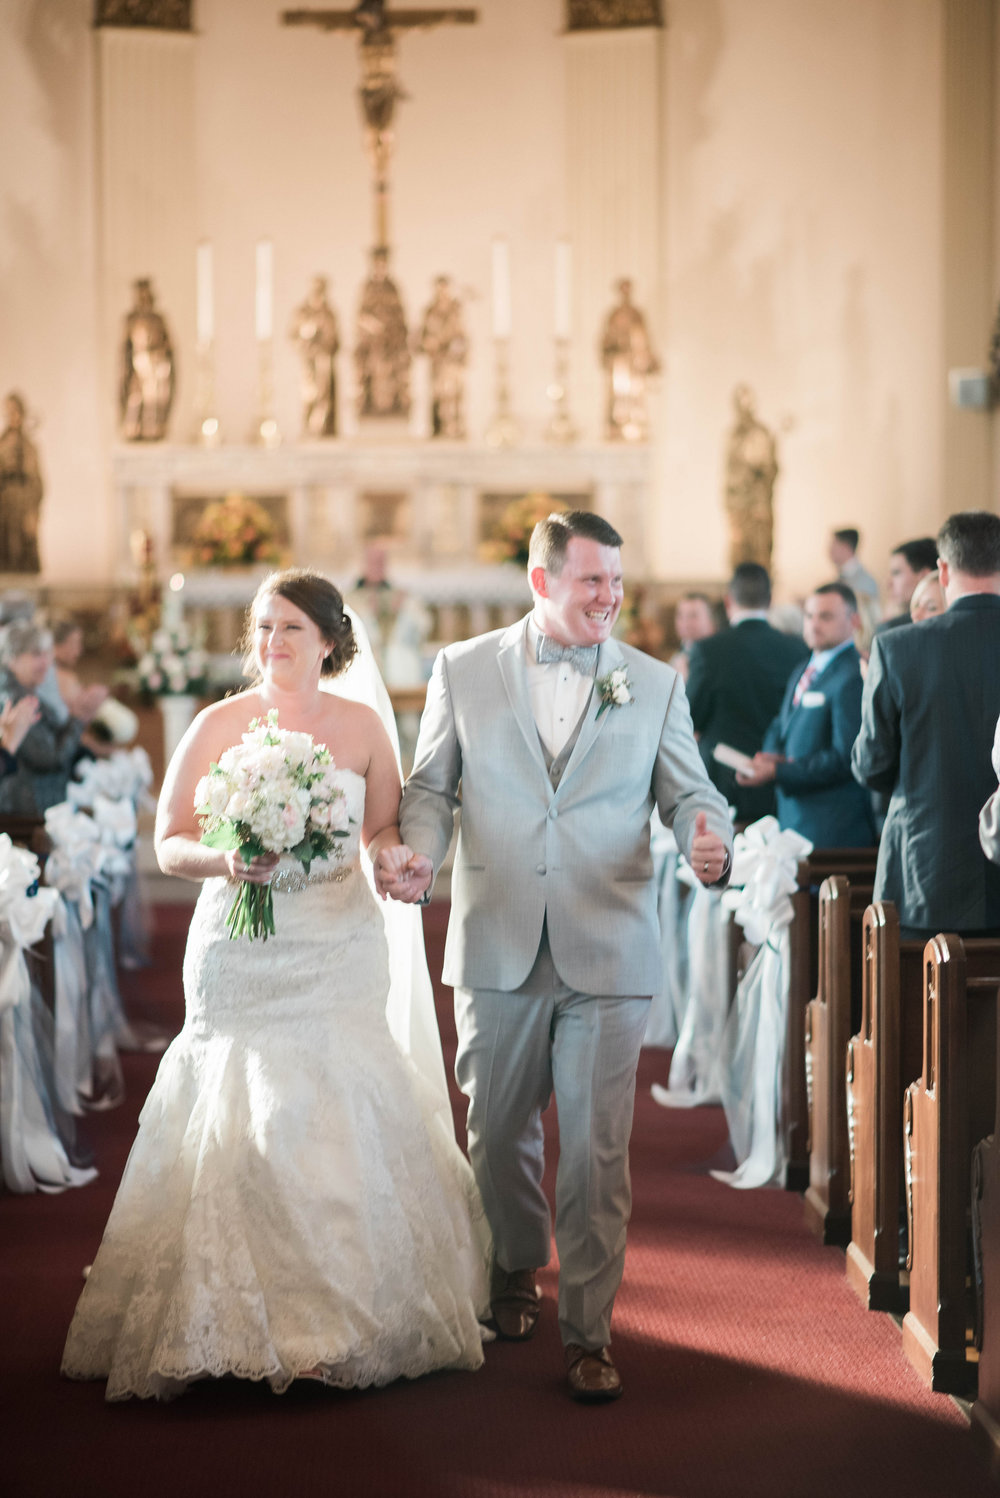 Wedding Ceremony | Maryland, Washington DC, Pennsylvania, Virginia Wedding Photographer | Anne Casey Photography